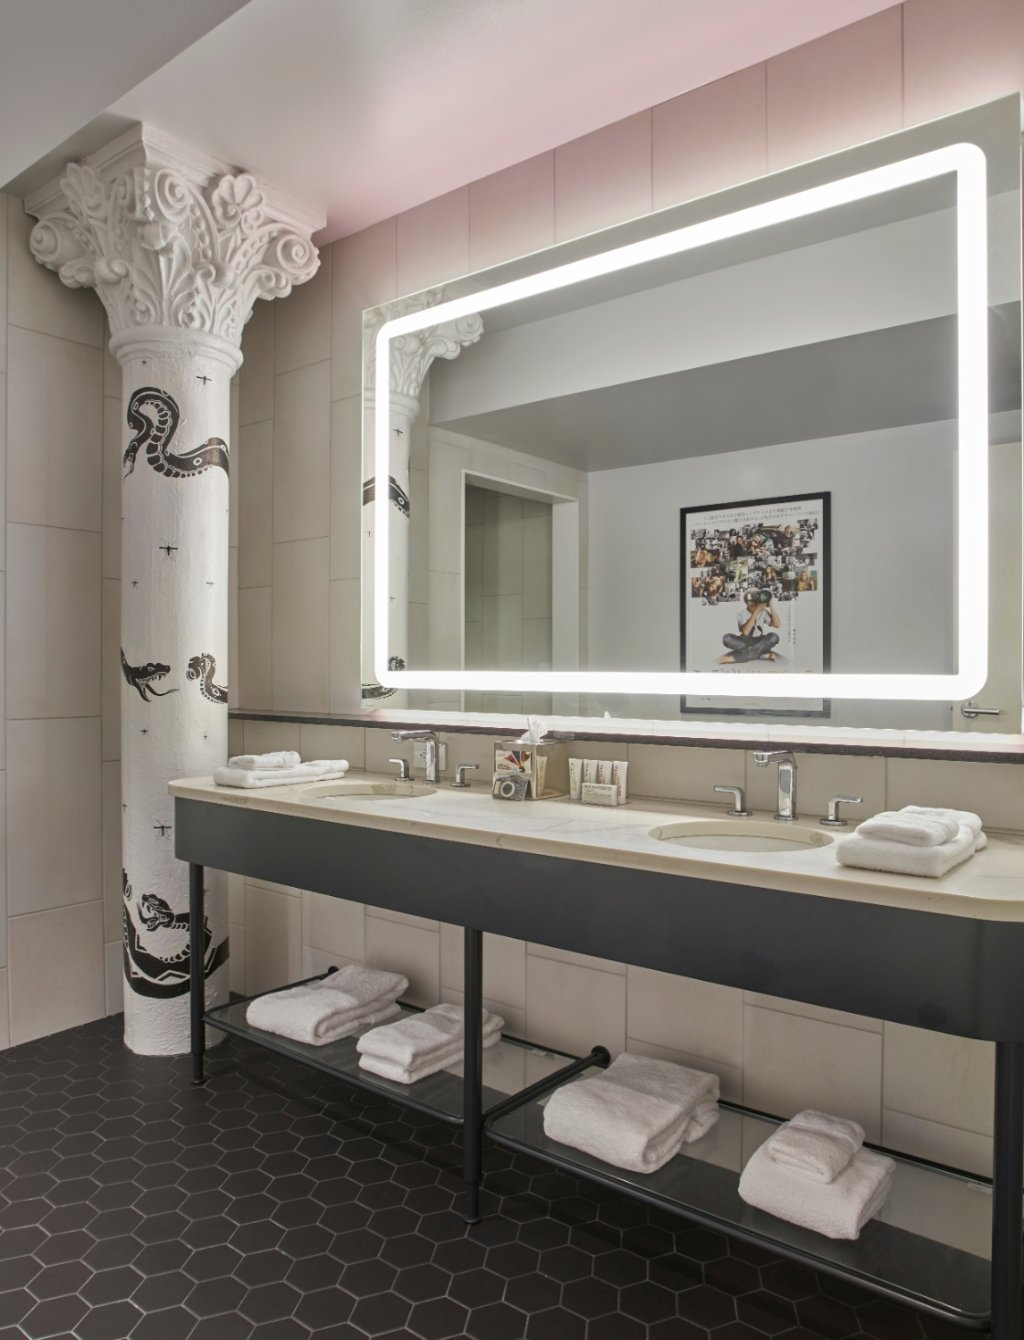 Bath Room, Undermount Sink, and Accent Lighting  21c Museum Hotel Nashville